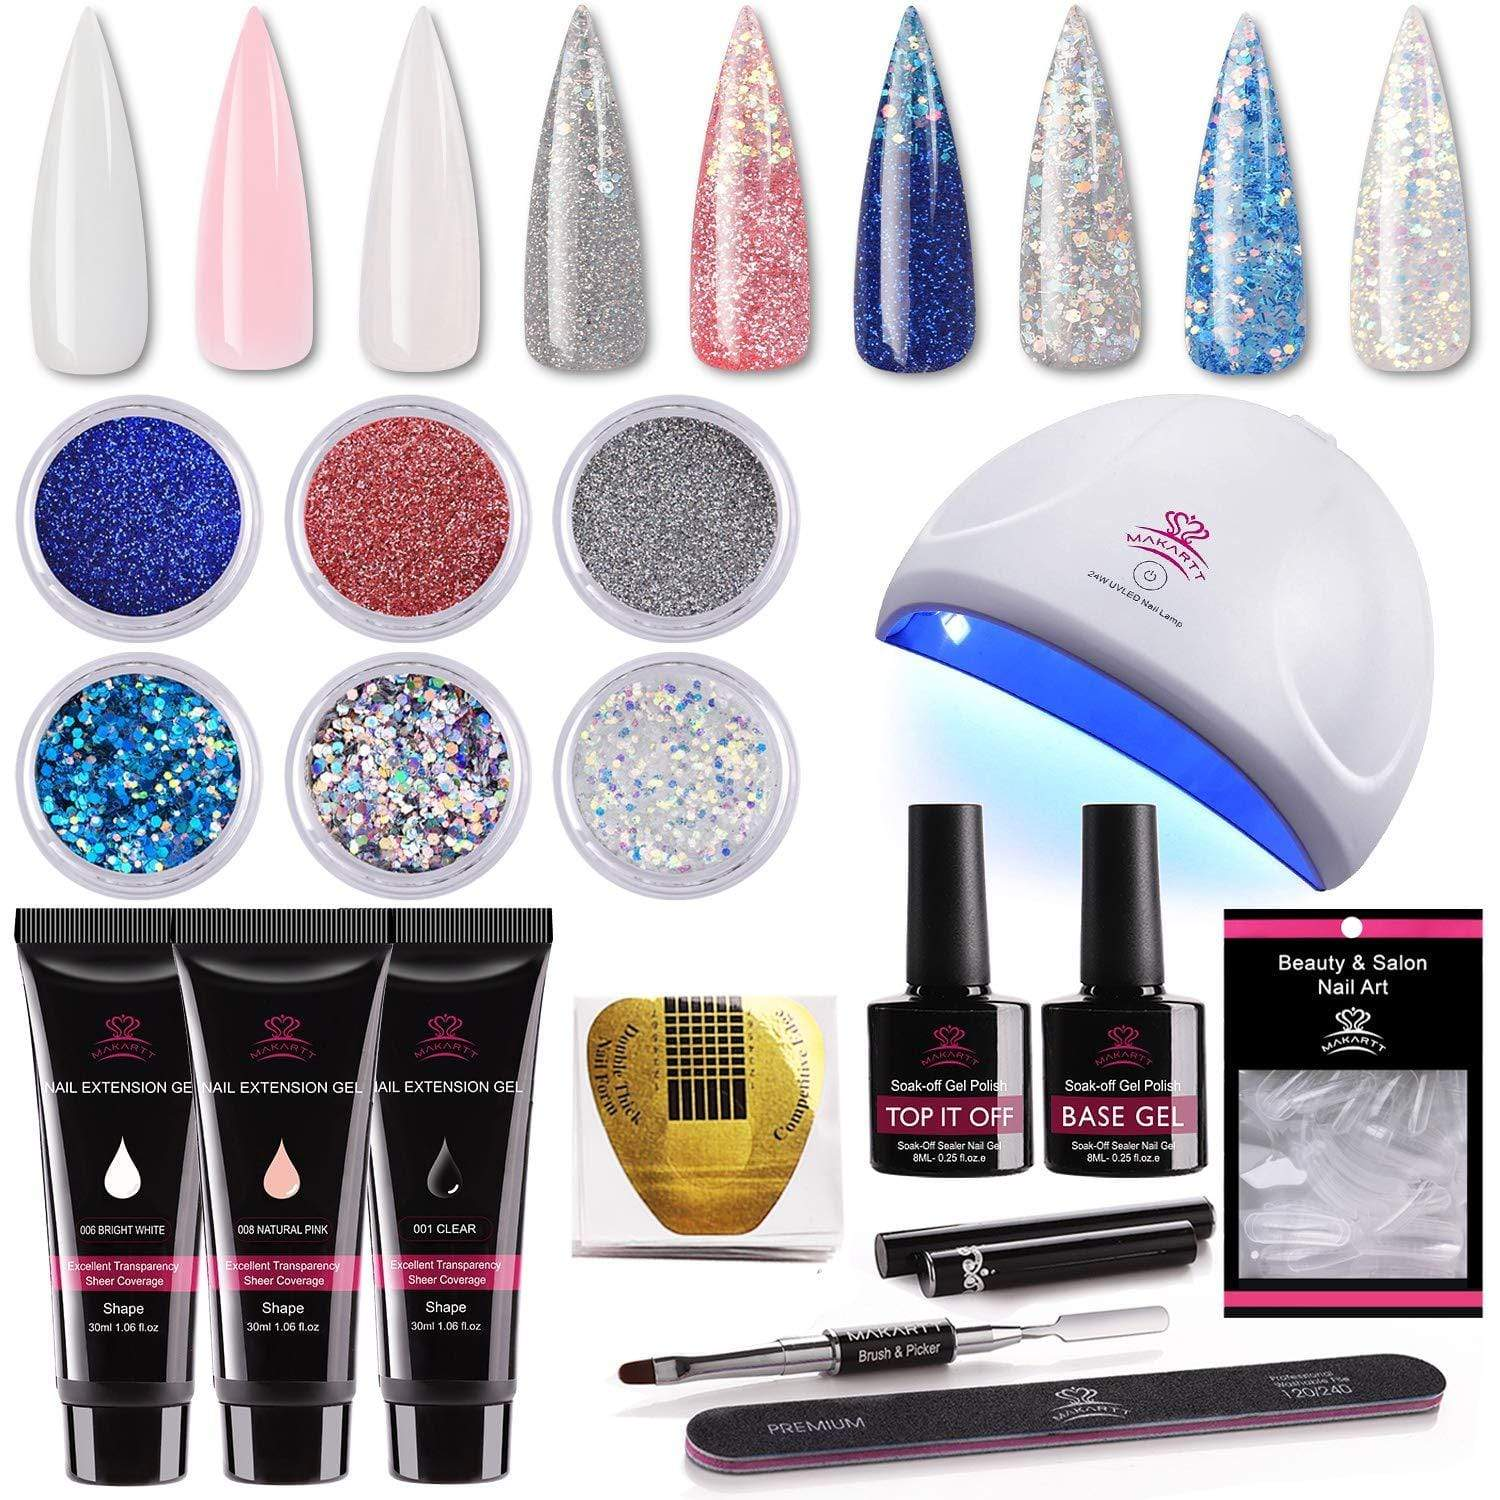 Deluxe Gorgeous Glitter Poly Nail Gel Extension Kit - Makartt